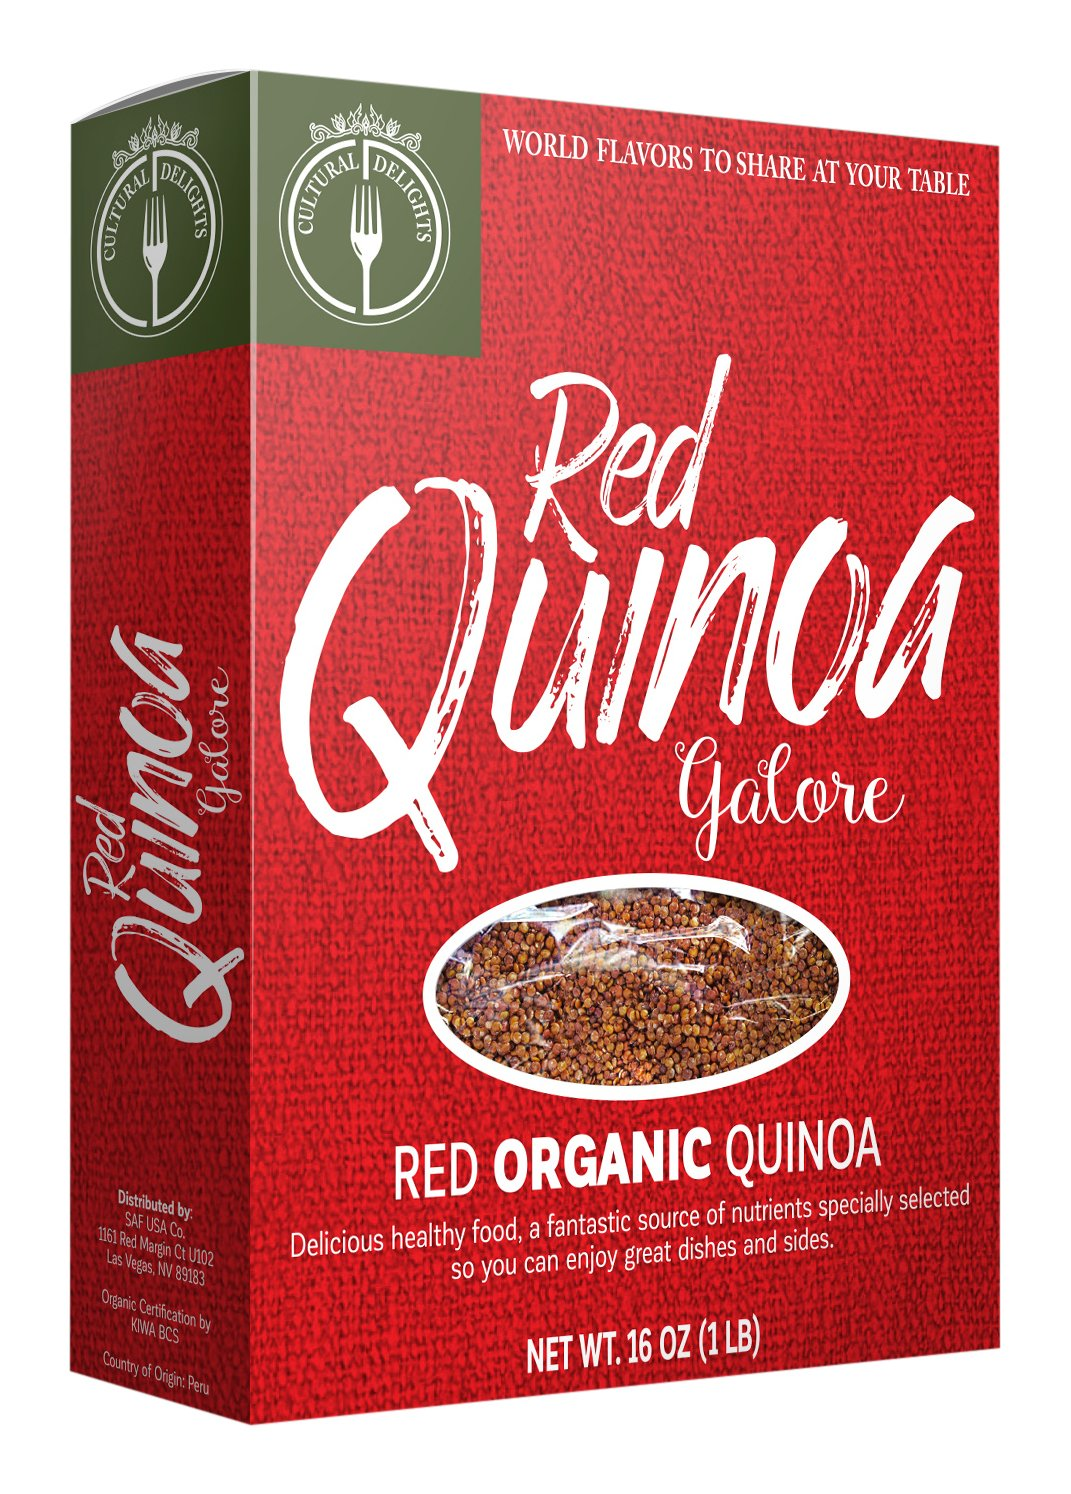 Culture Foods The Finest Organic Red Quinoa Peruvian Whole Grain 24 Piece Value Pack